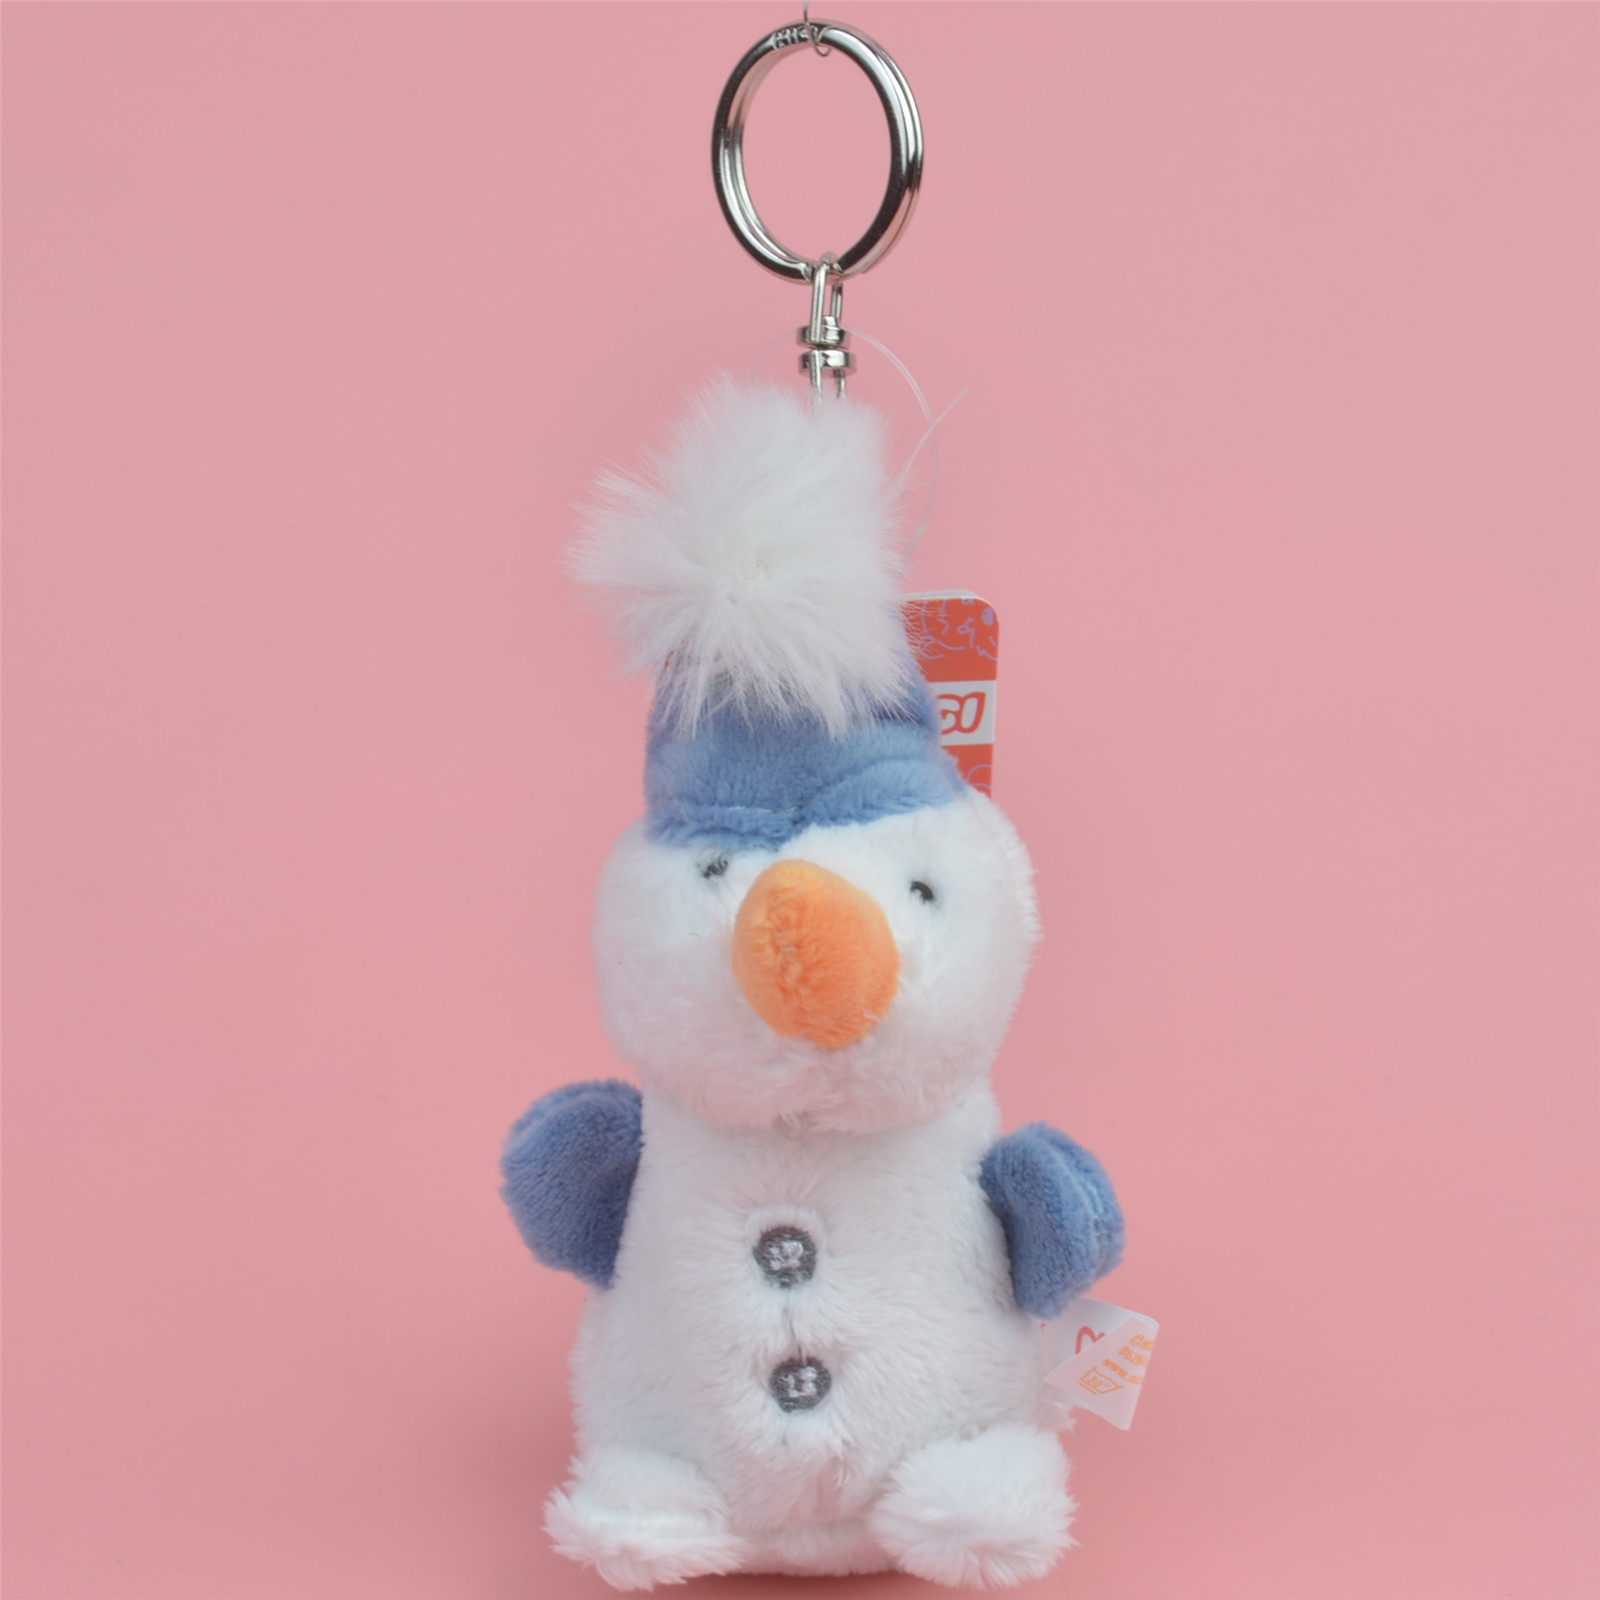 3 Pcs Blue Hat Snowman Small Plush Pendant Toy, Kids Doll  Keychain / Keyholder Gift Free Shipping